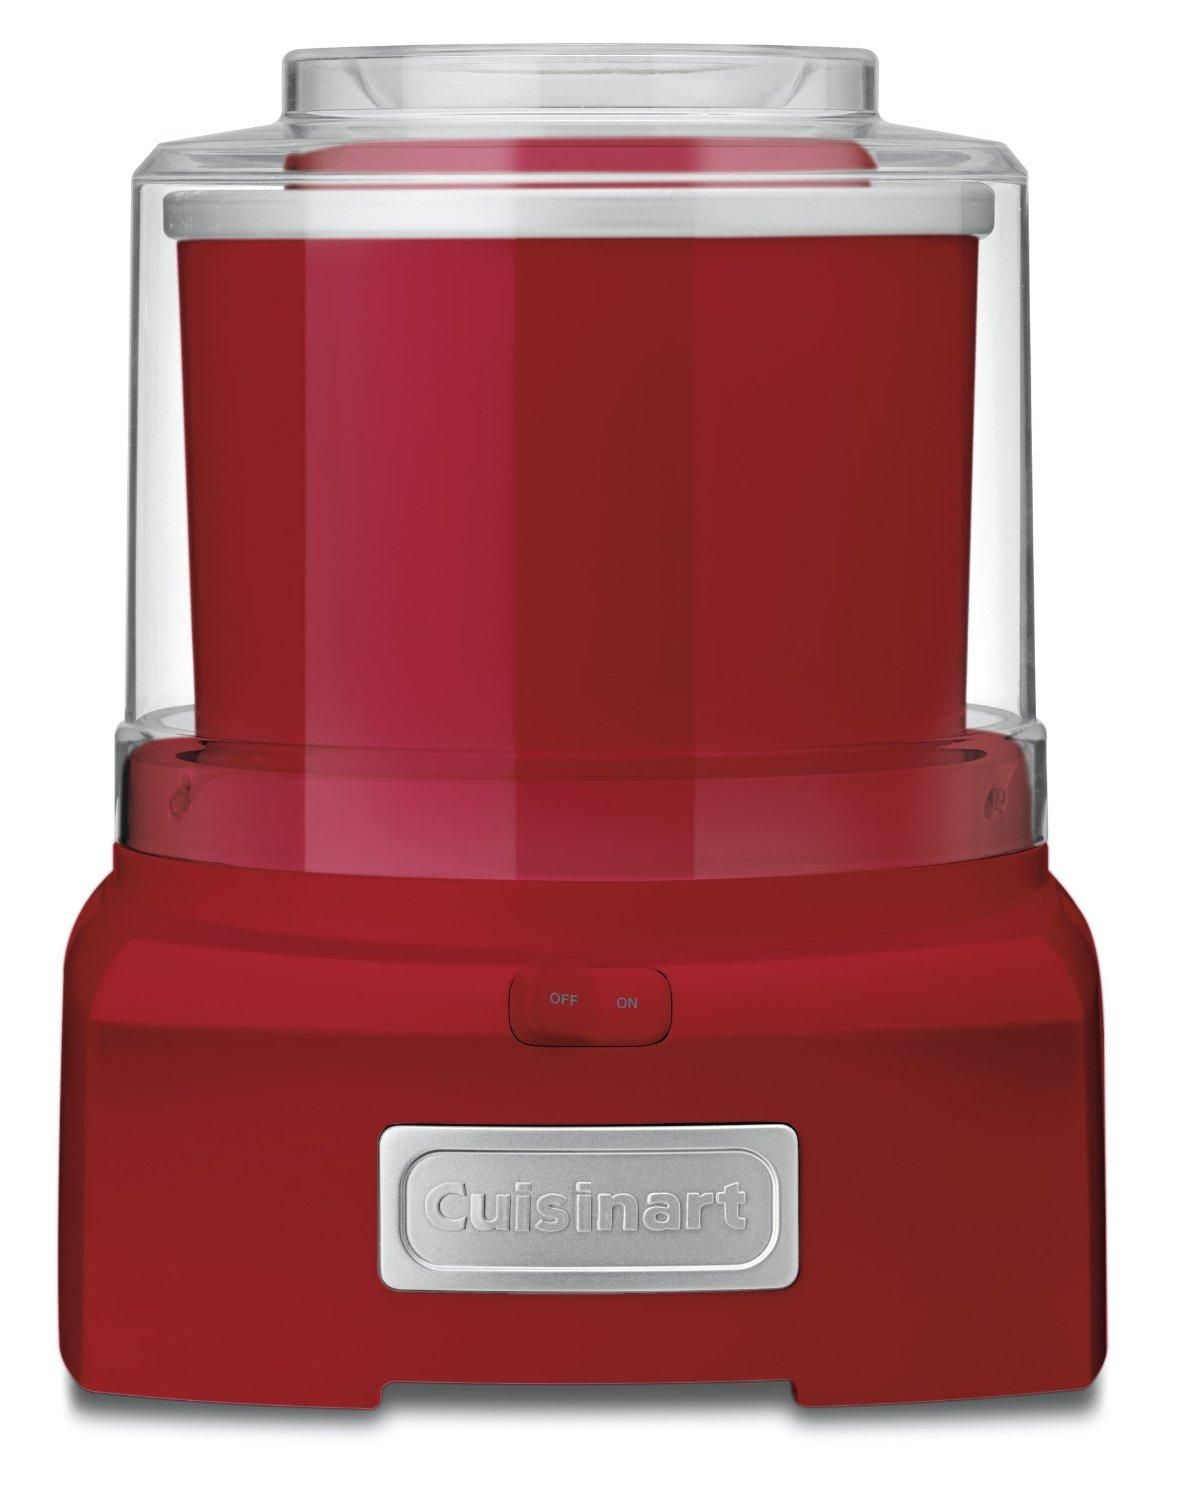 Cuisinart Automatic Frozen Yogurt, Ice Cream, and Sorbet Maker - Red ICE-21-RED